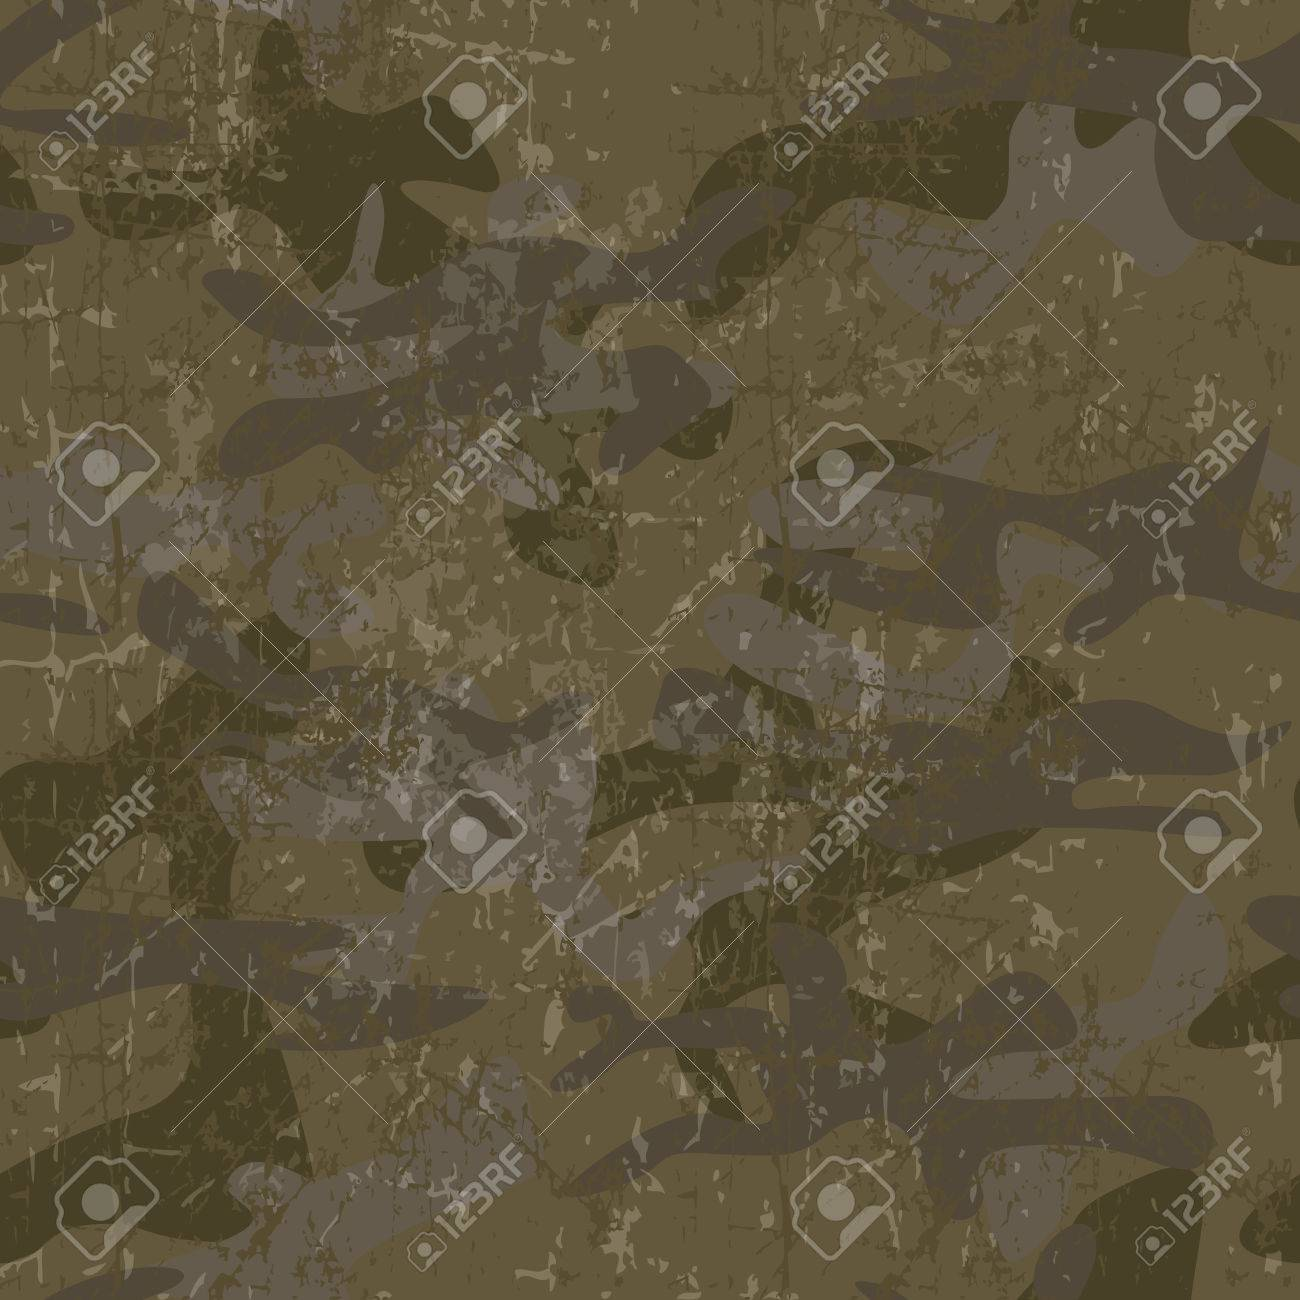 Military background with copy space - 23655688